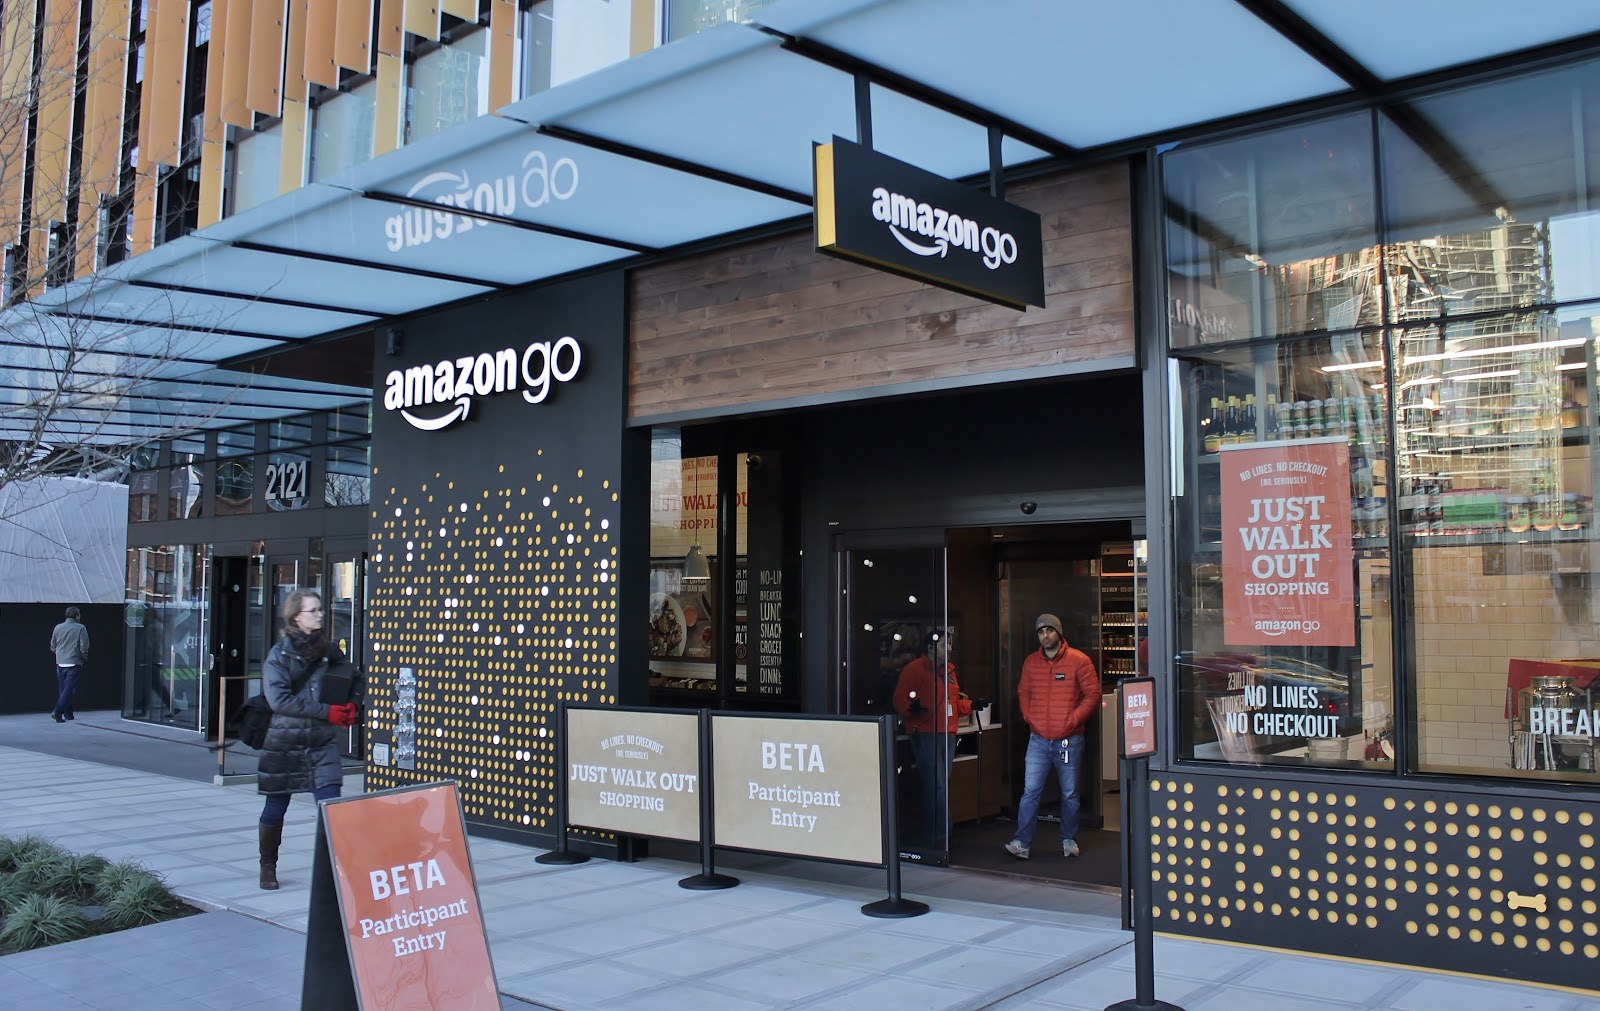 After conquering e-commerce, Amazon is expanding into retail stores.